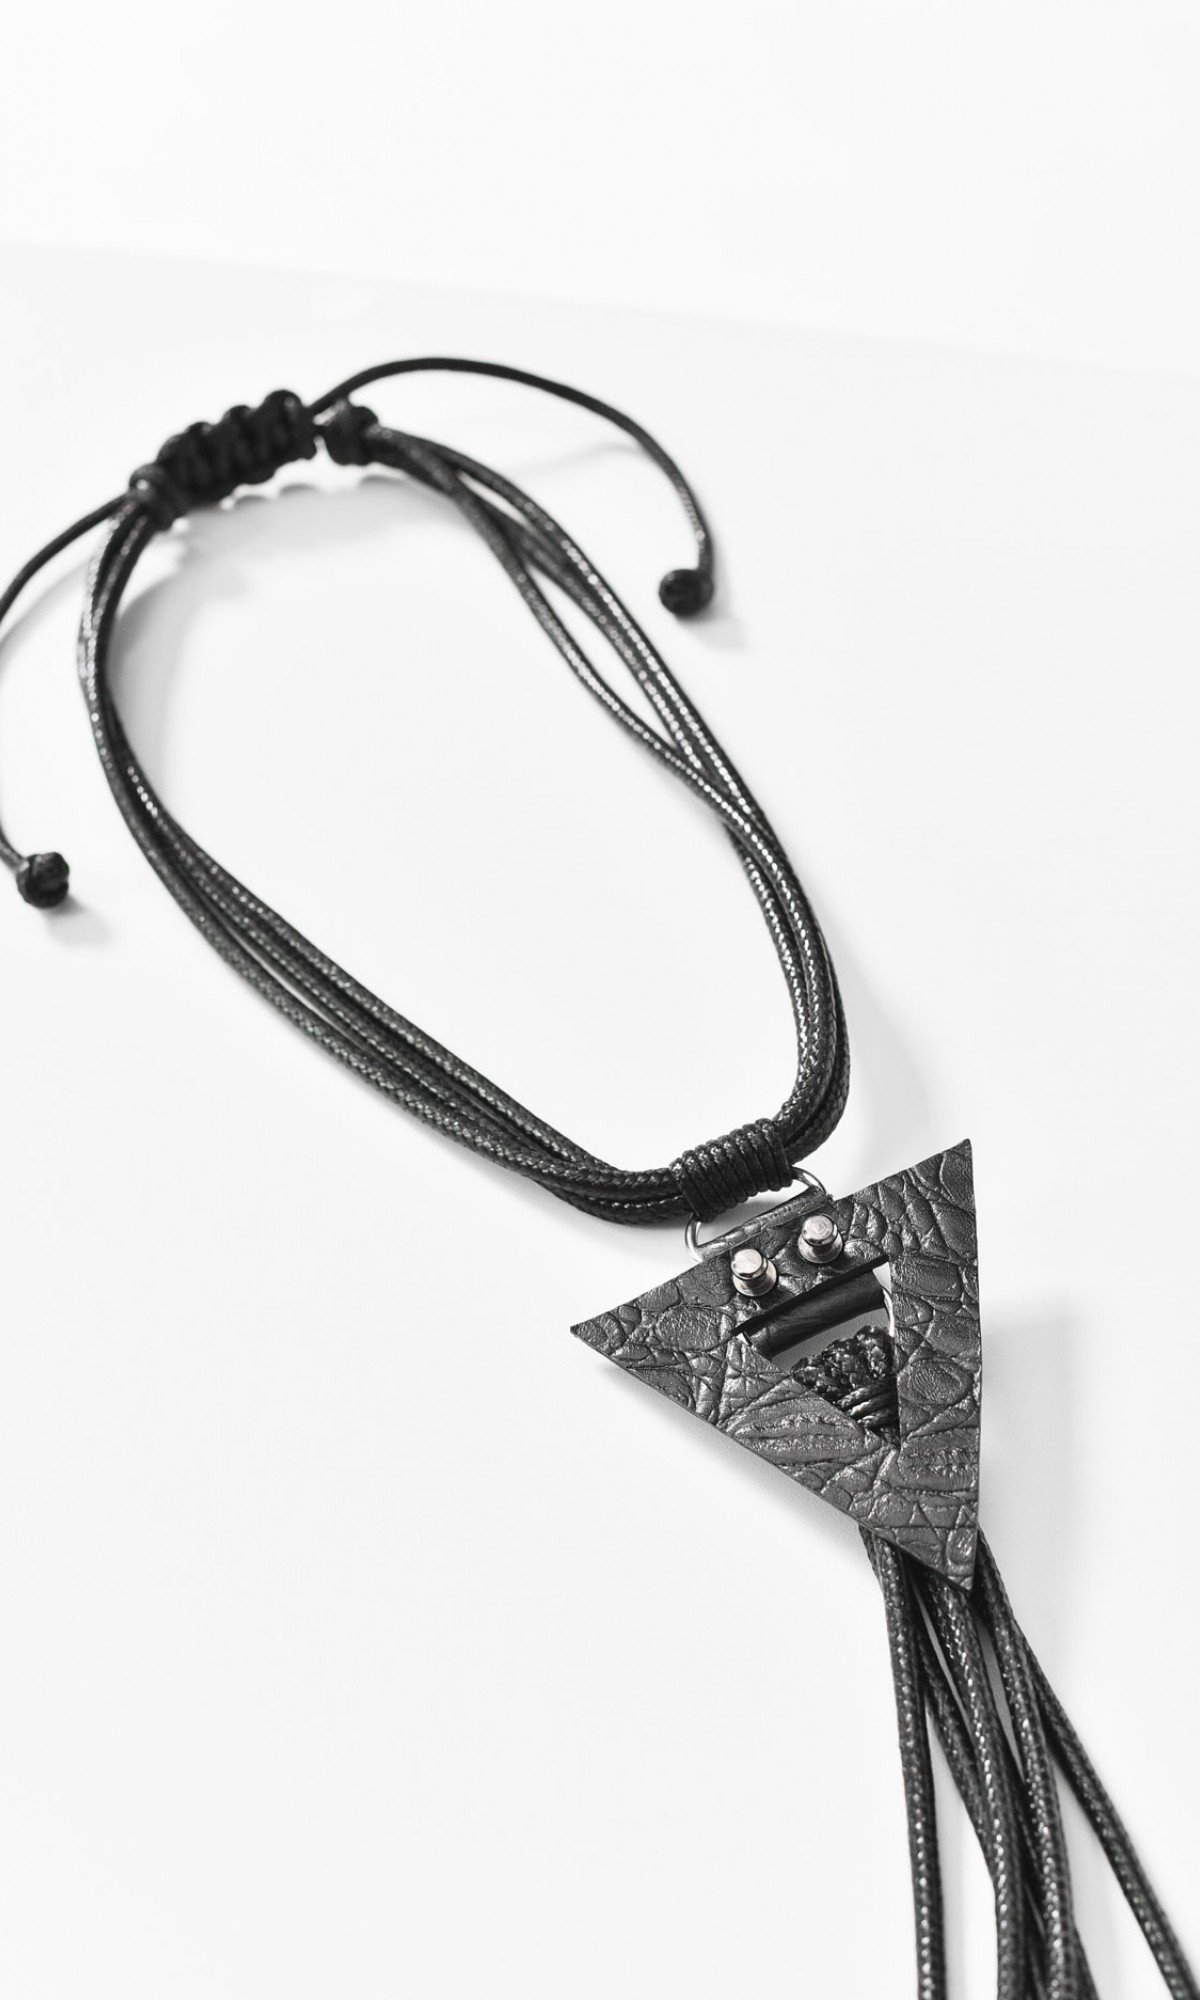 Trendy Leather necklace with triangle ornament A16861